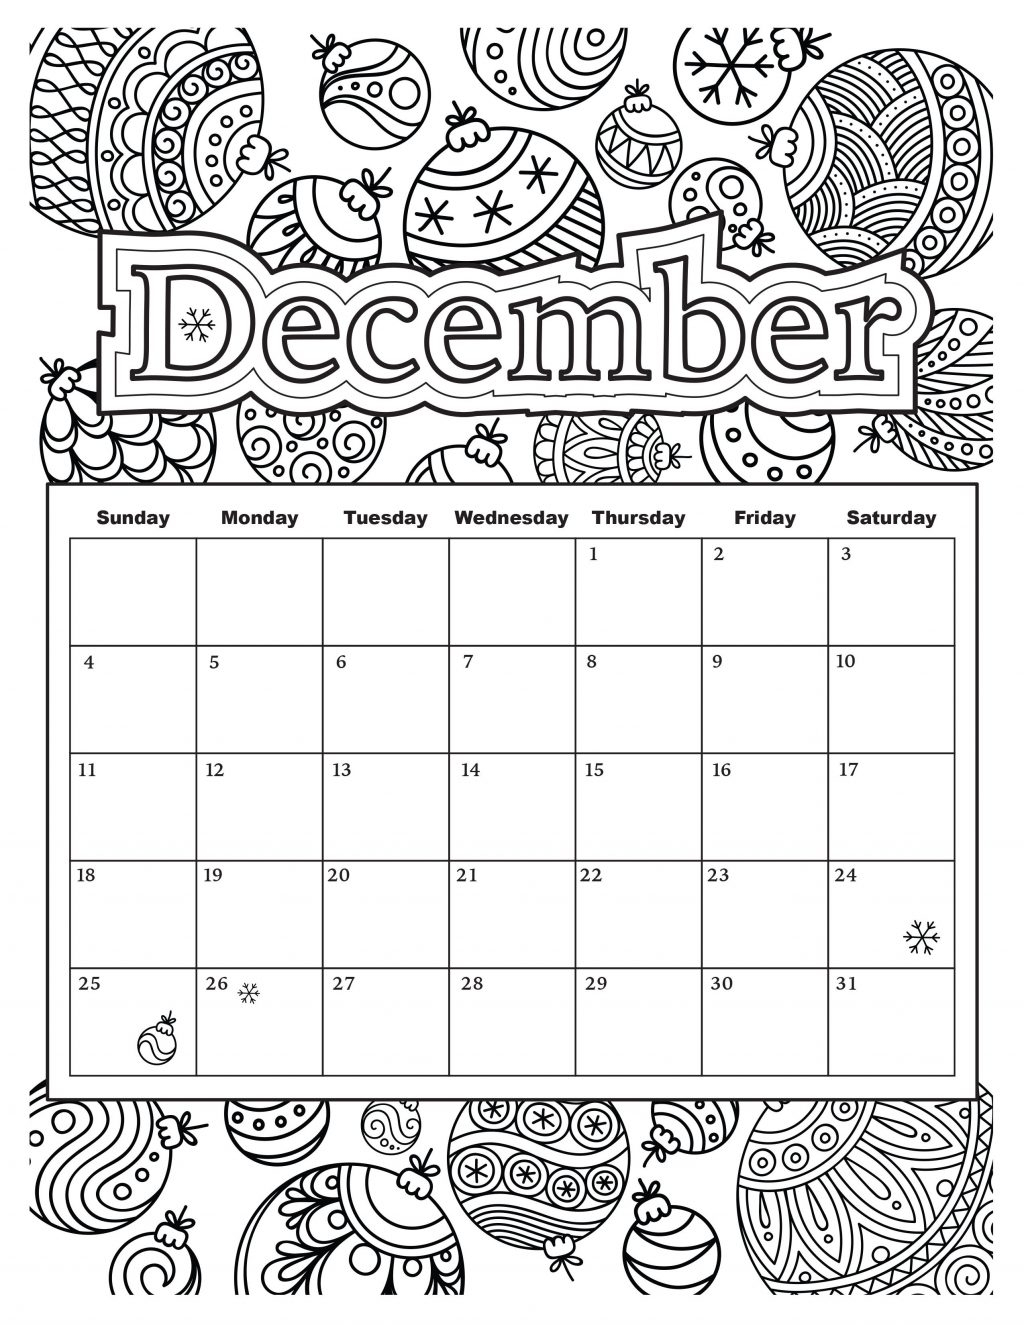 Coloring Page ~ Coloring Book Templates December Calendar Free in Free Printable Adult October Calendar 2019 Coloring Sheets